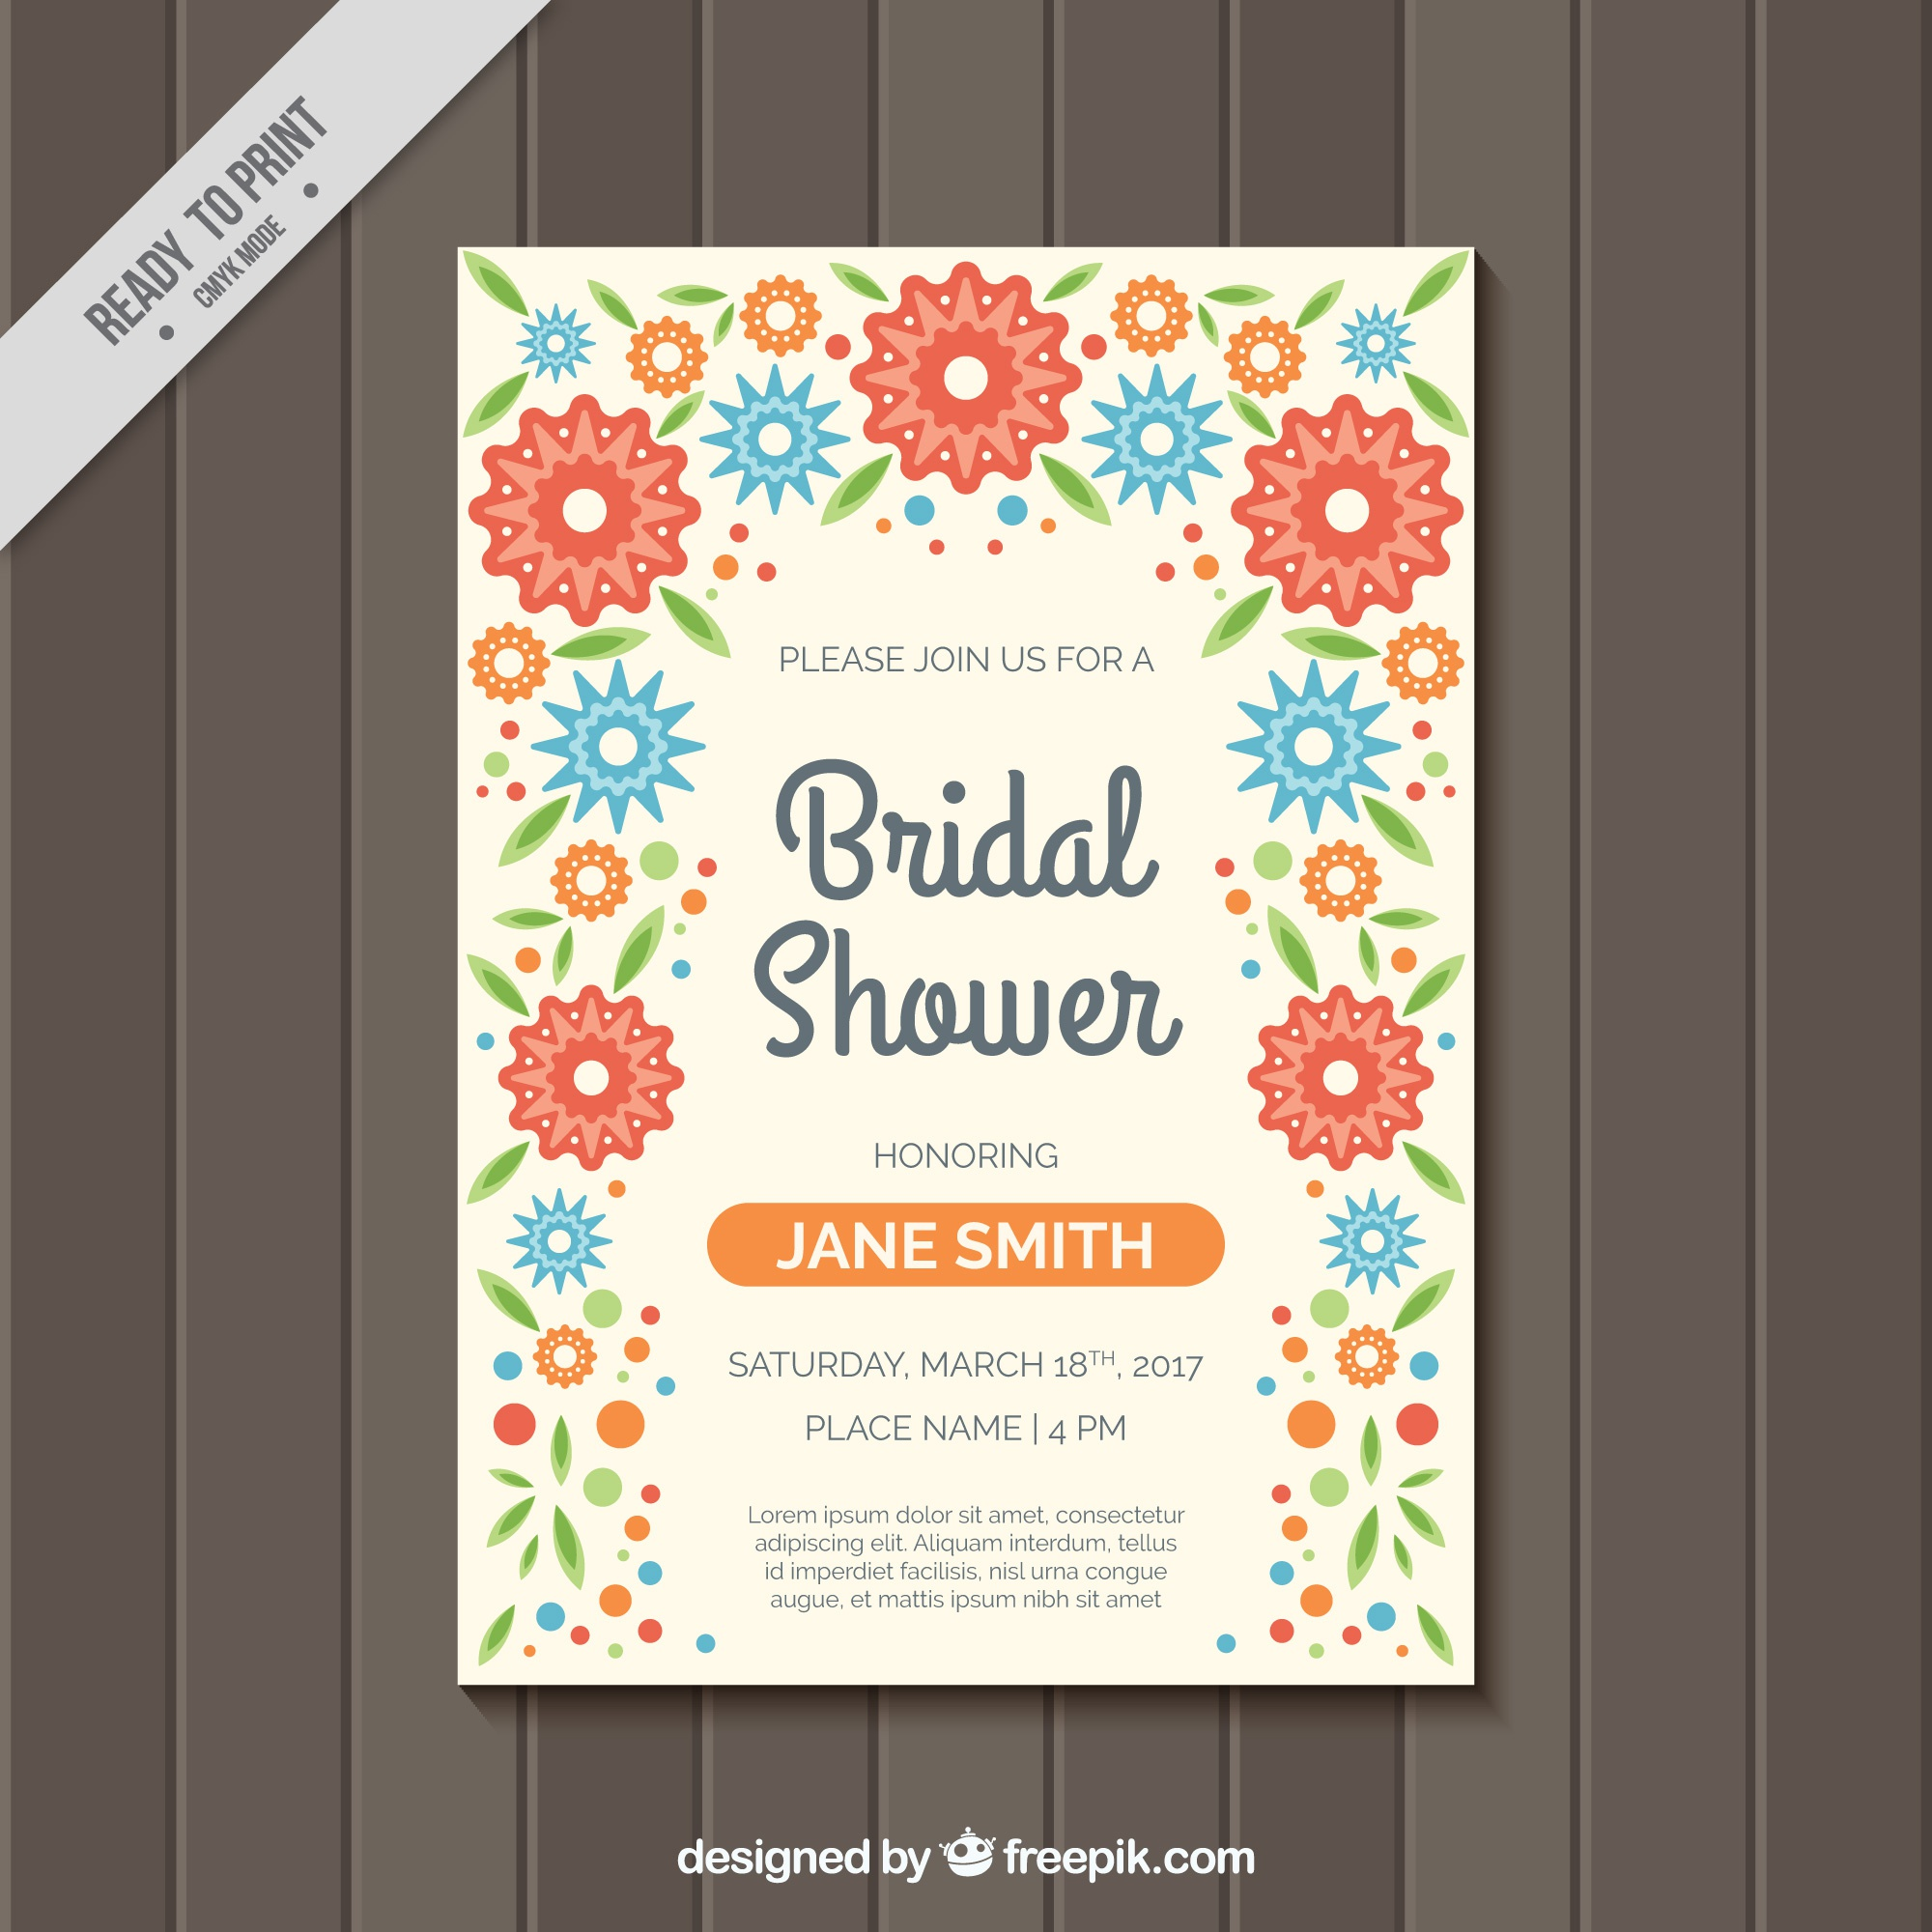 Bridal shower invitation with colored flowers in flat design